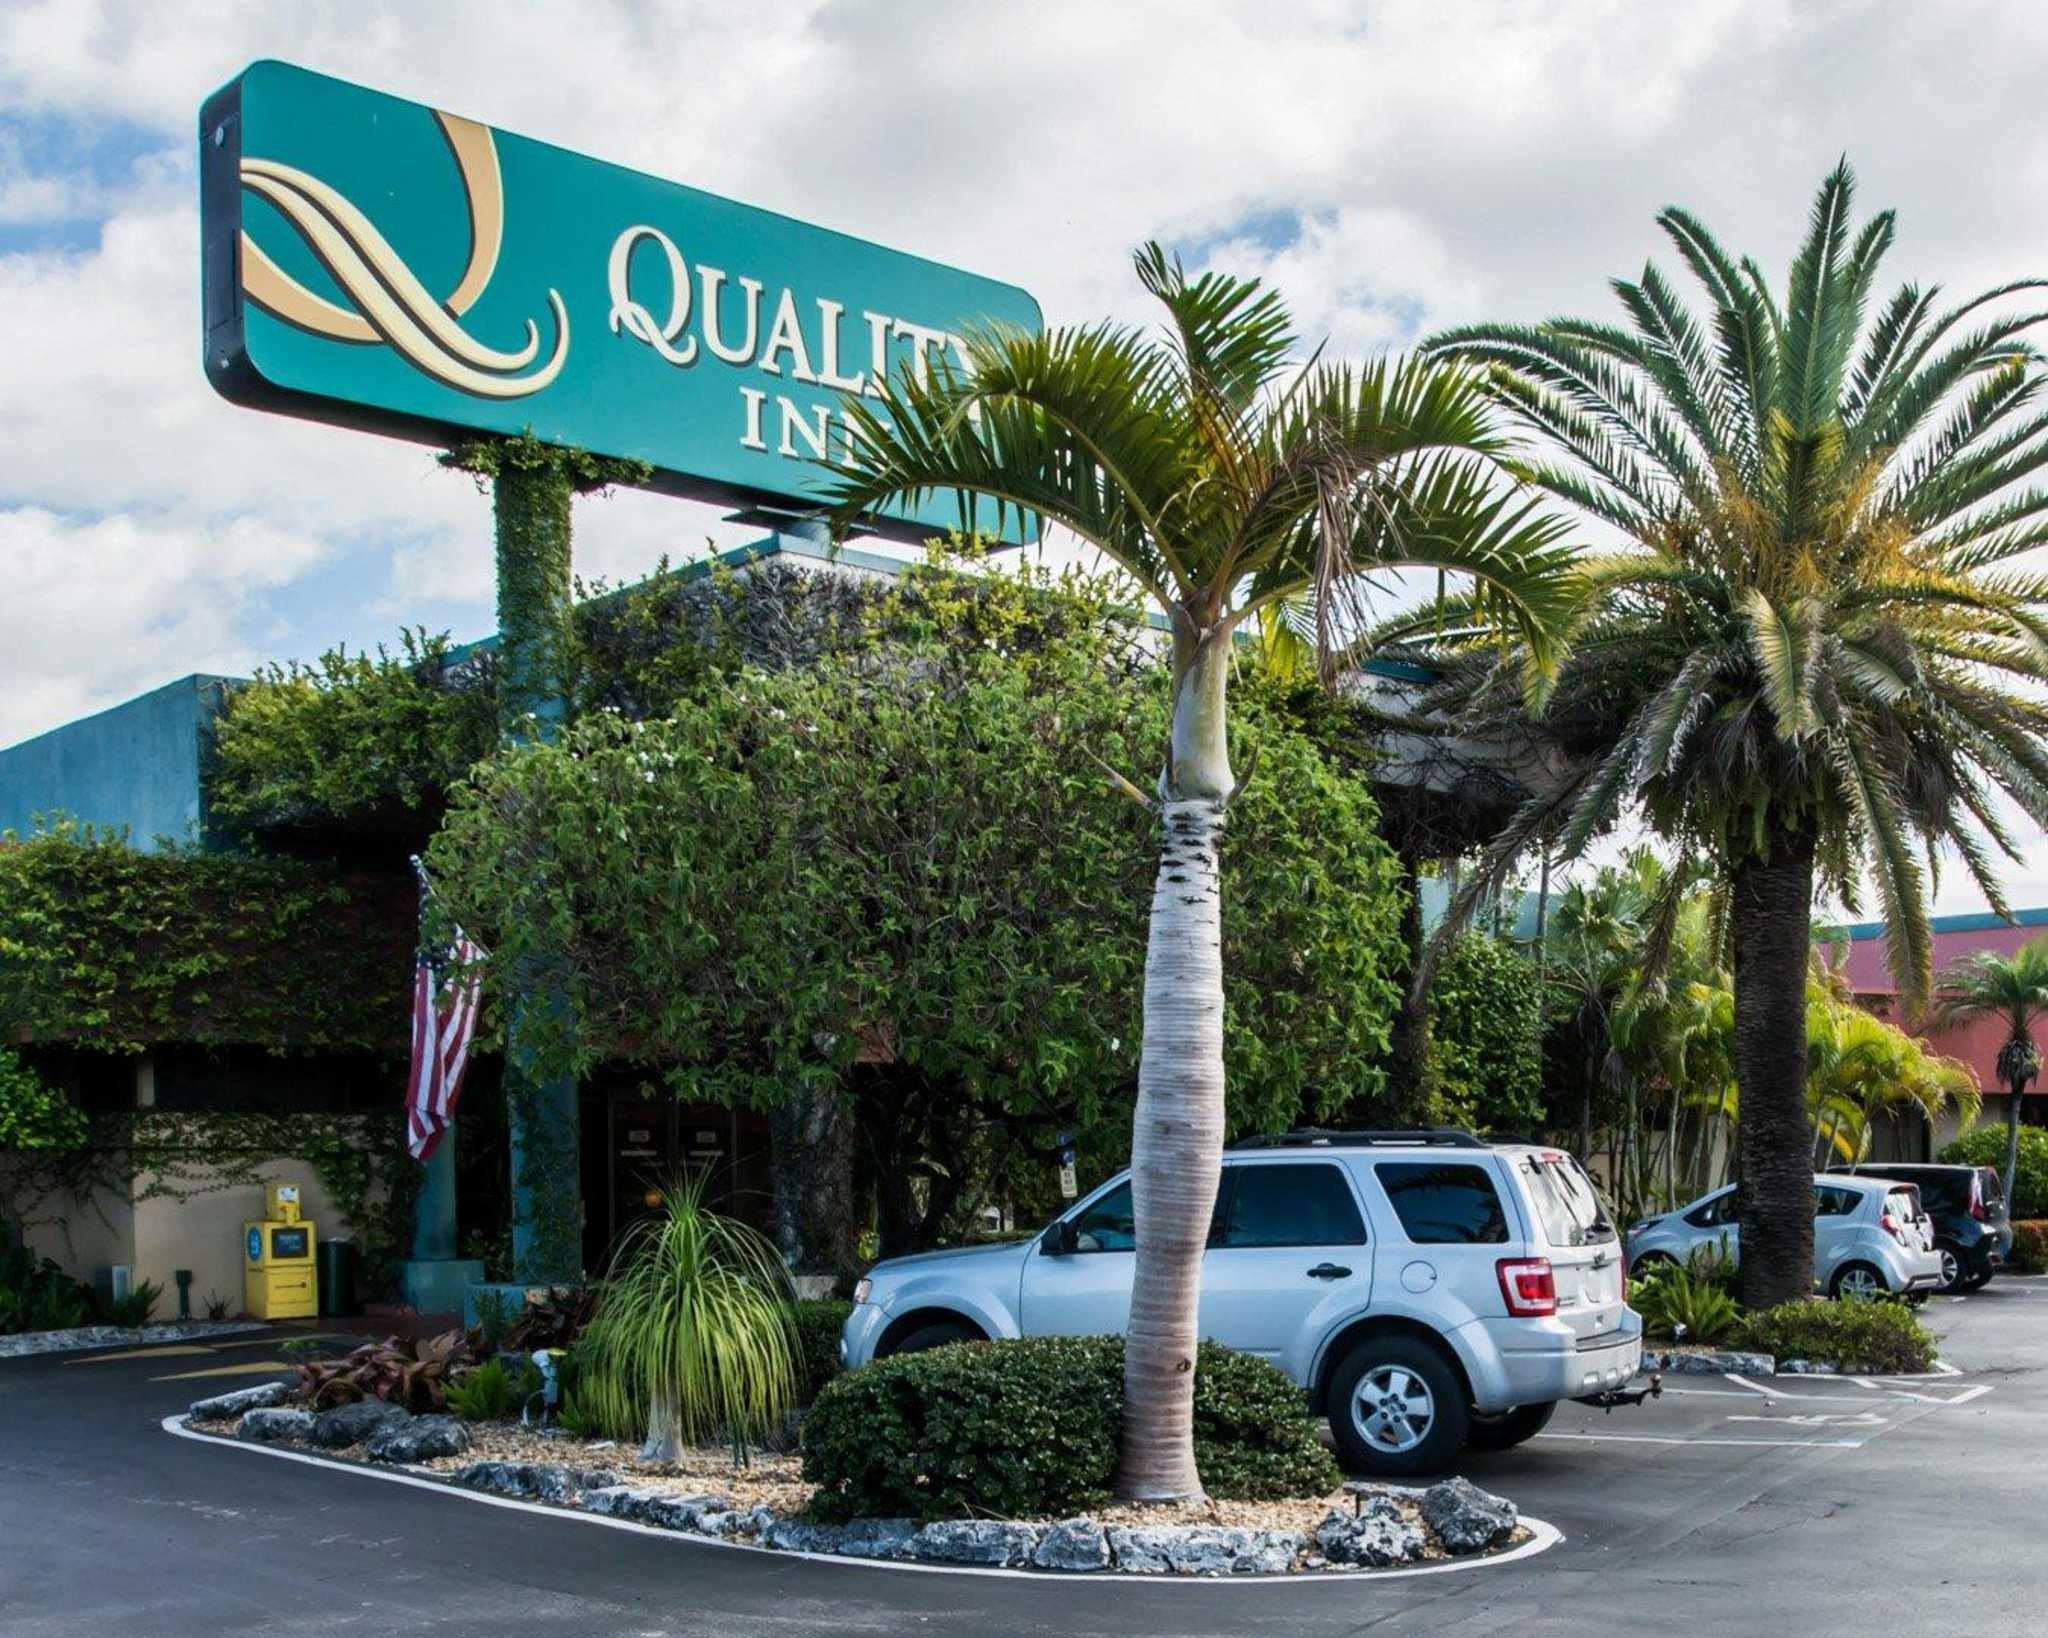 Hotels business in Miami, FL, United States